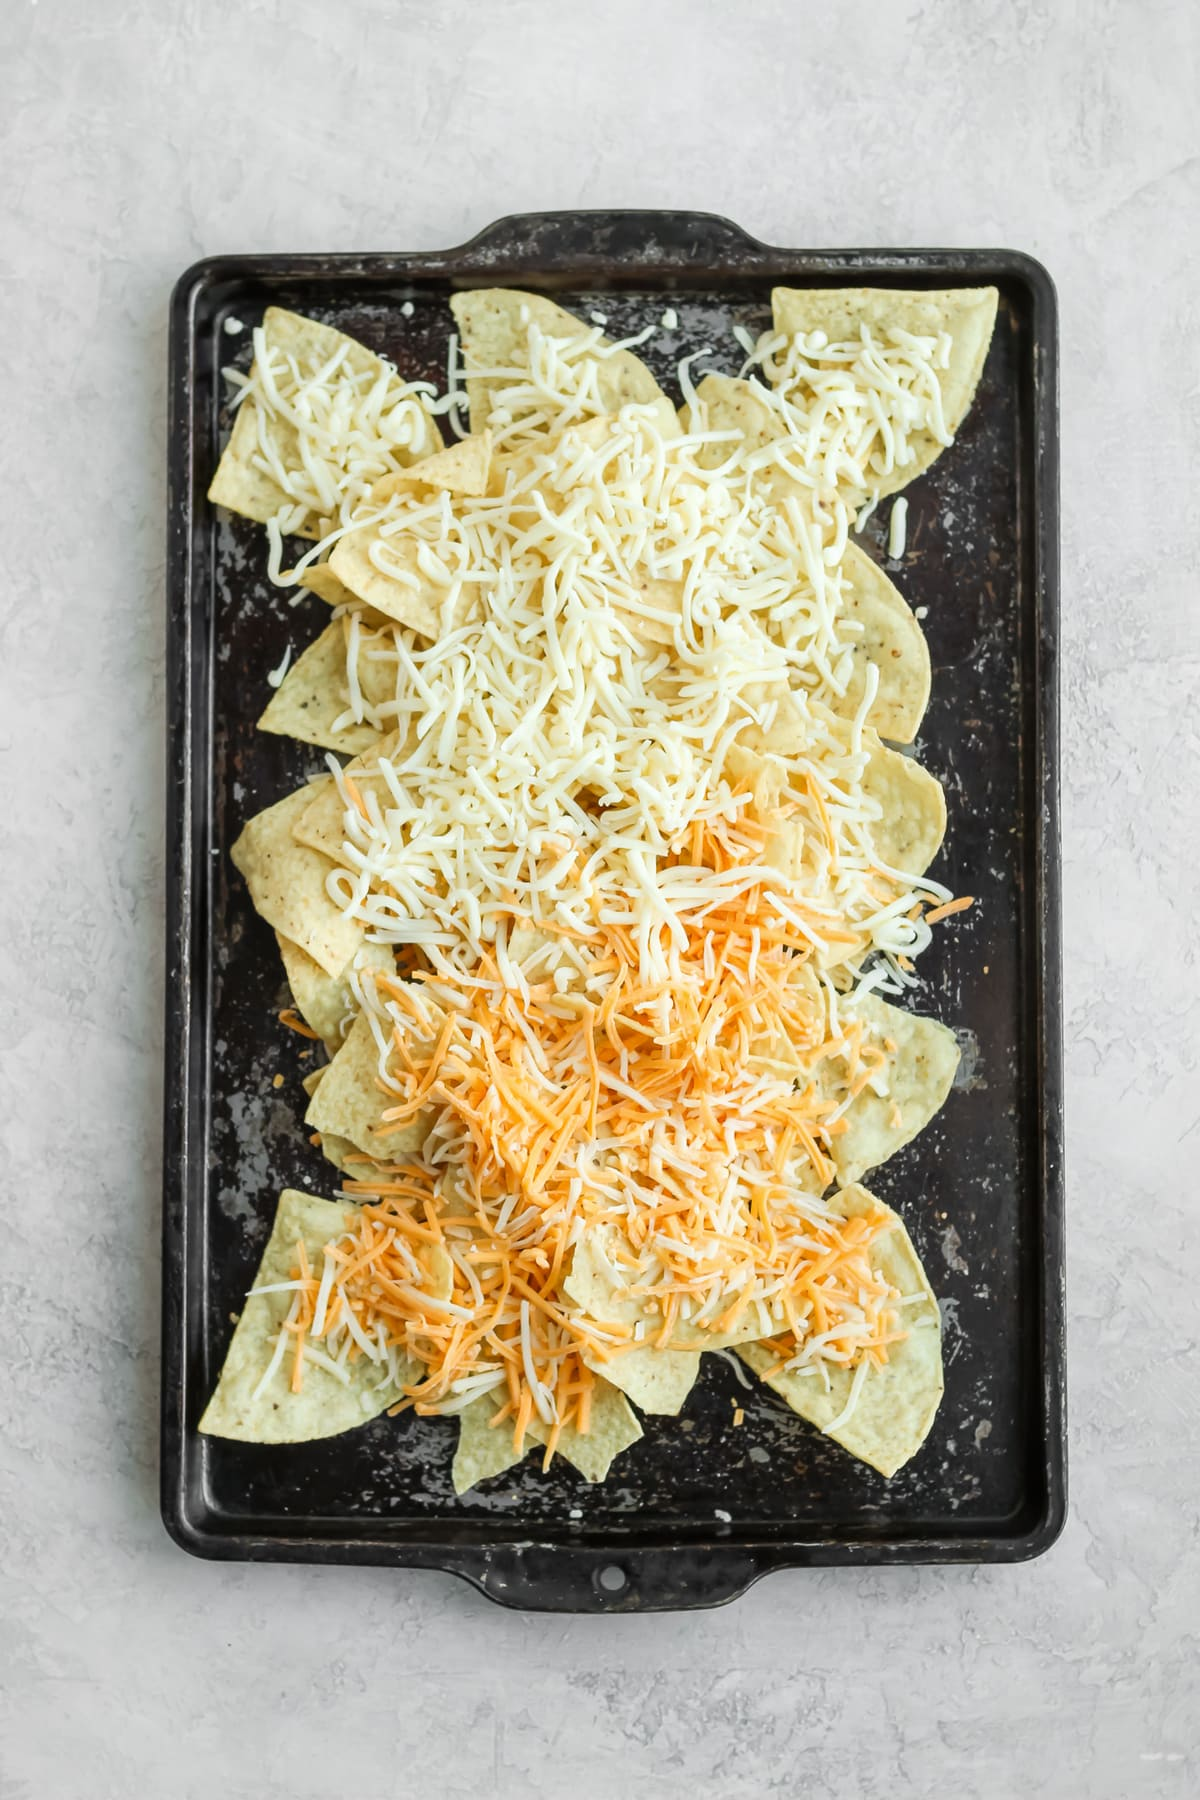 sheet pan of tortilla chips topped with shredded cheese